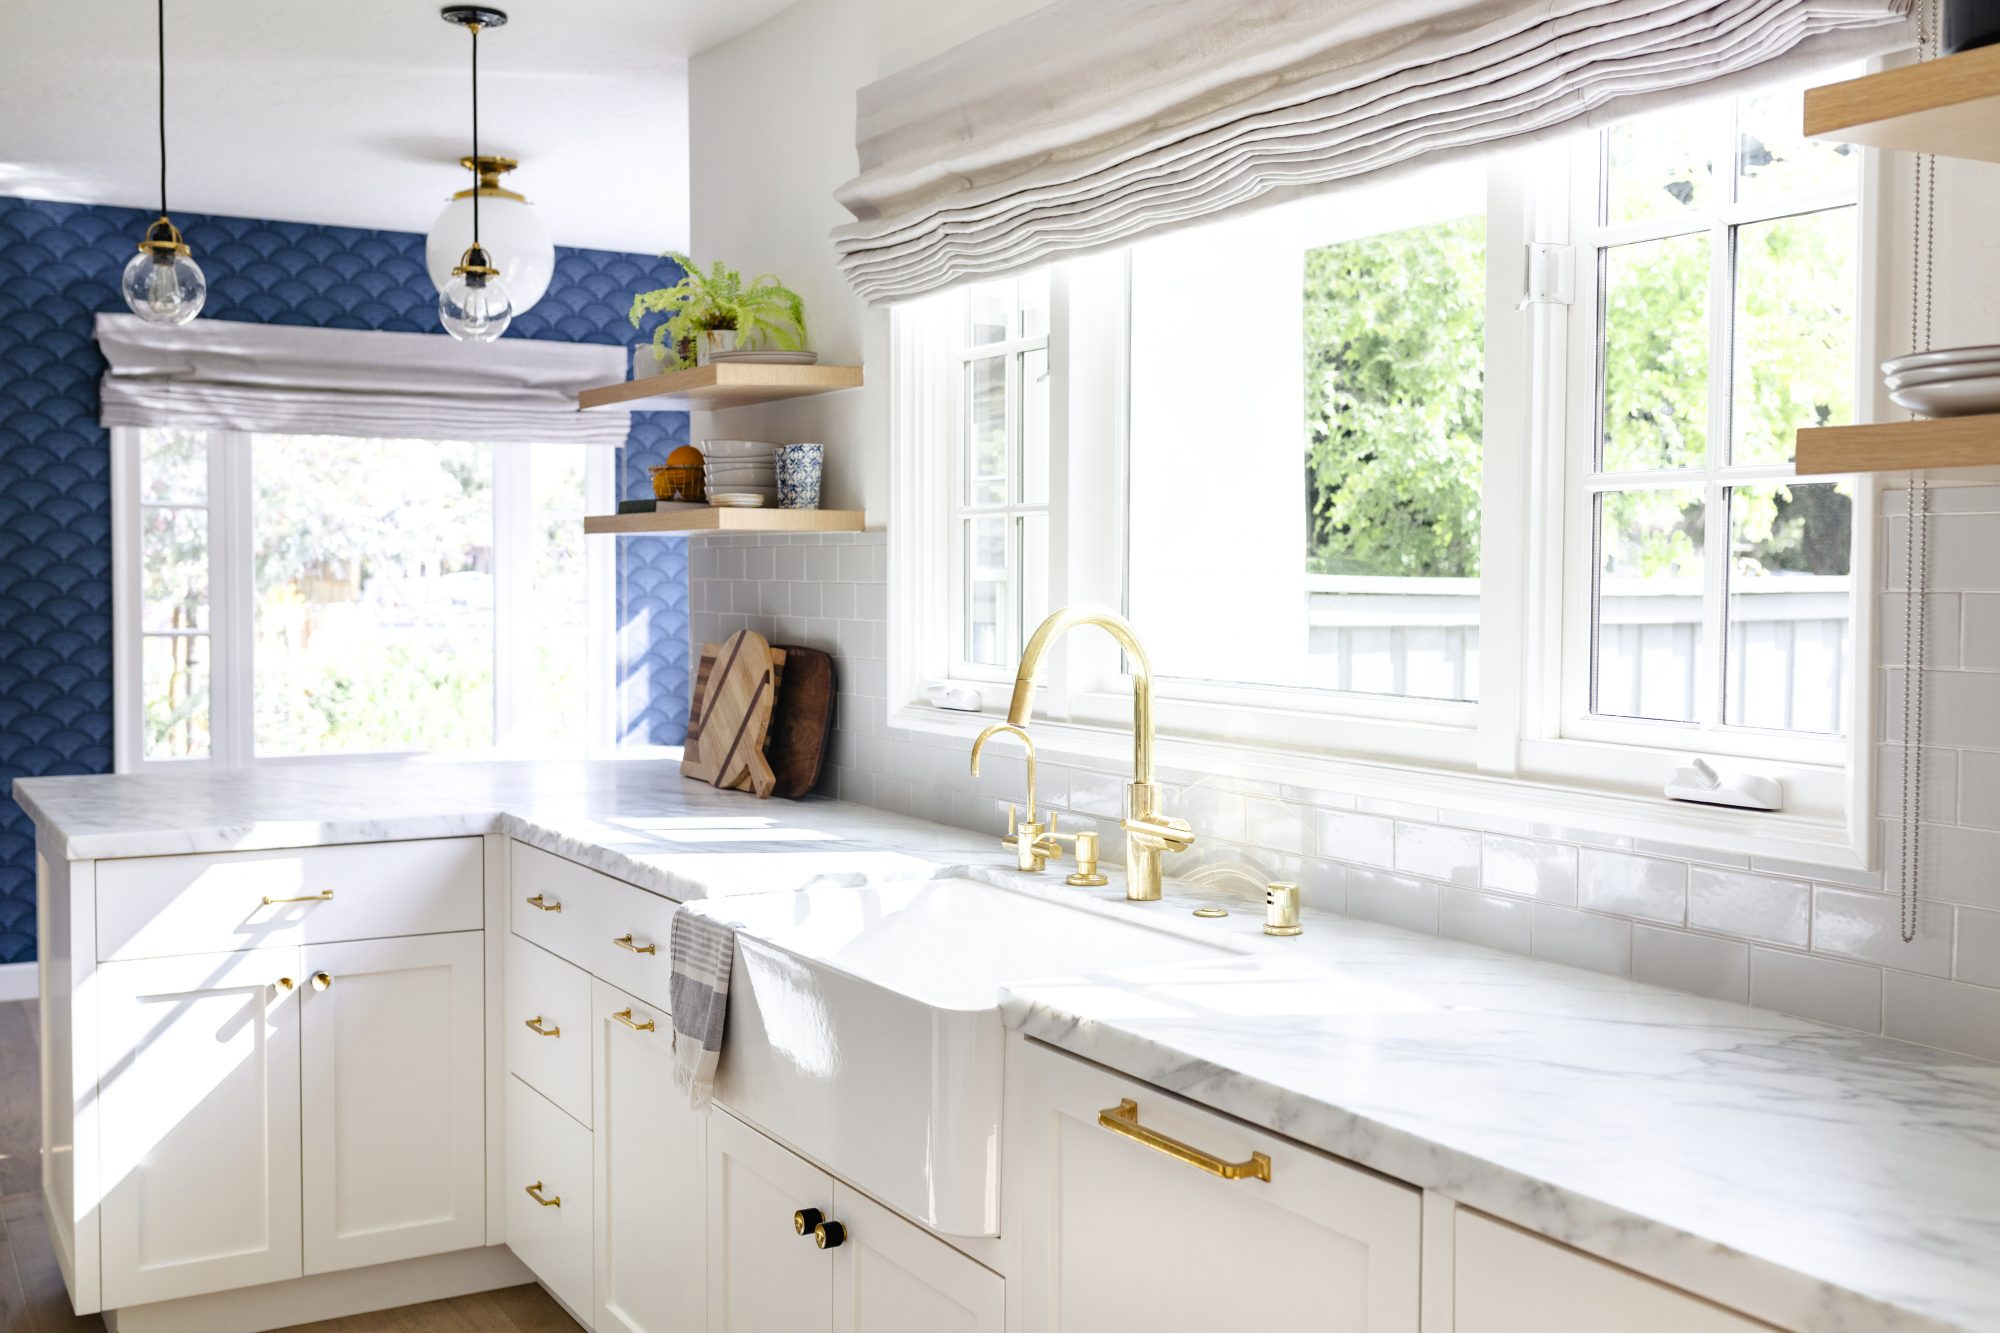 White kitchen with navy blue detailing and white marble counter with gold fixtures.